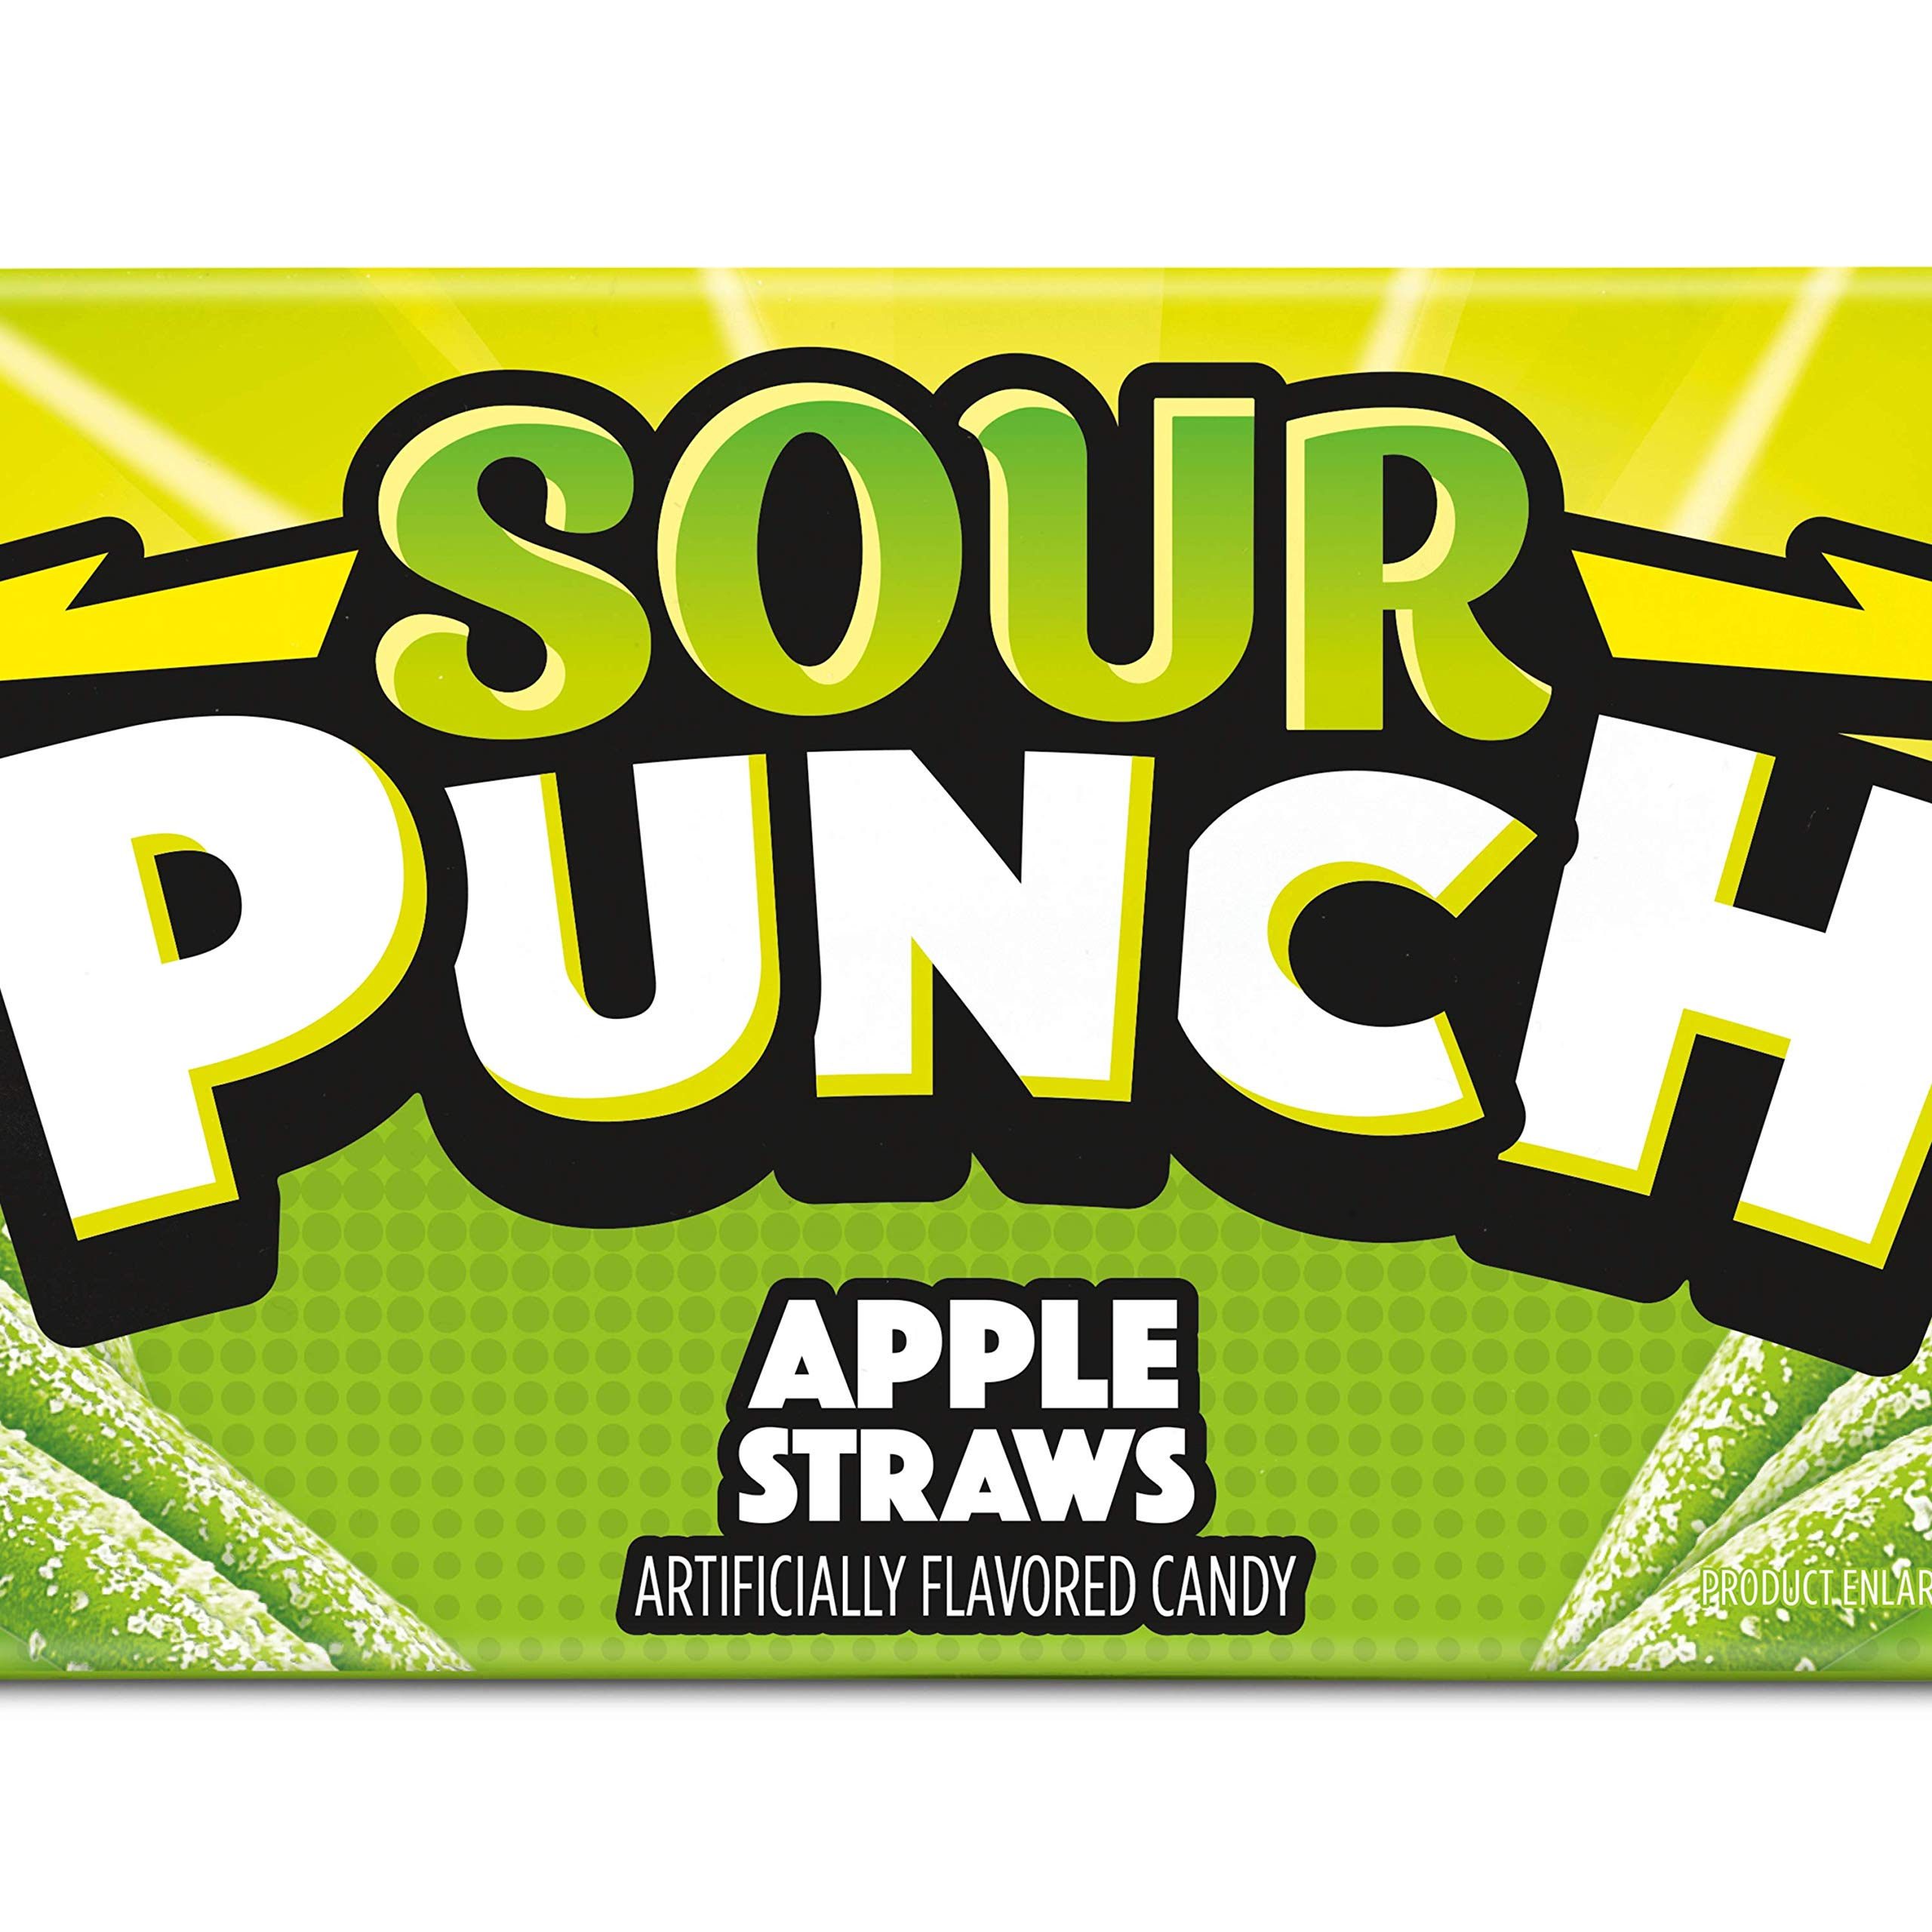 Sour Punch Straws, Sweet & Sour Apple Fruit Flavor, Chewy Candy, 4.5oz Tray (24 Pack)